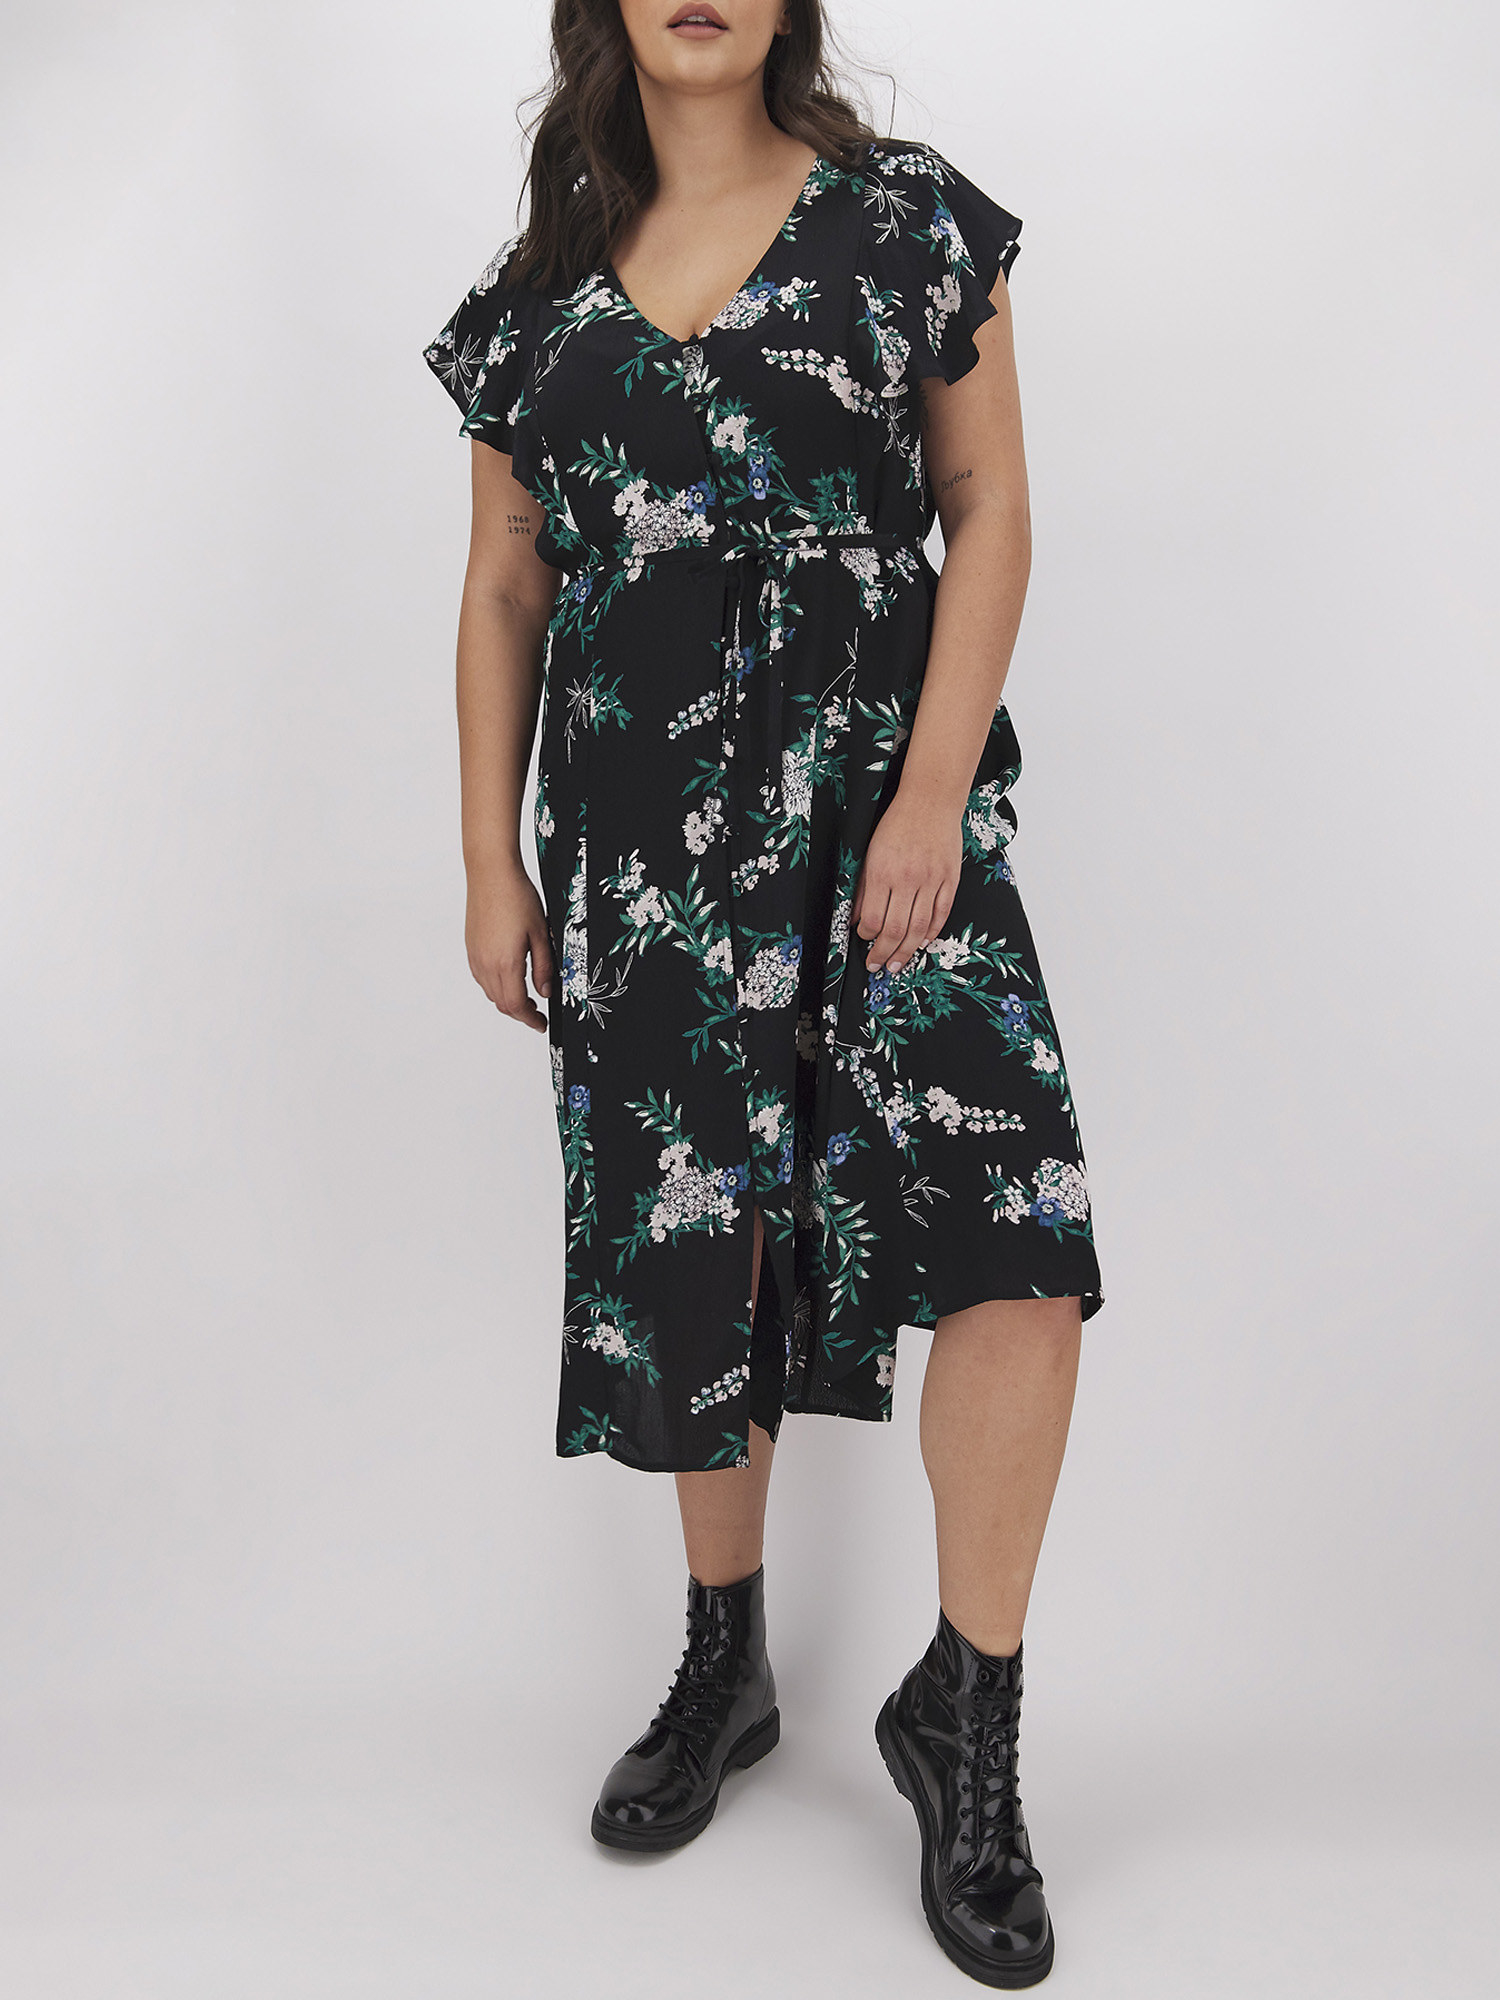 a model in the black dress with white and blue florals on it